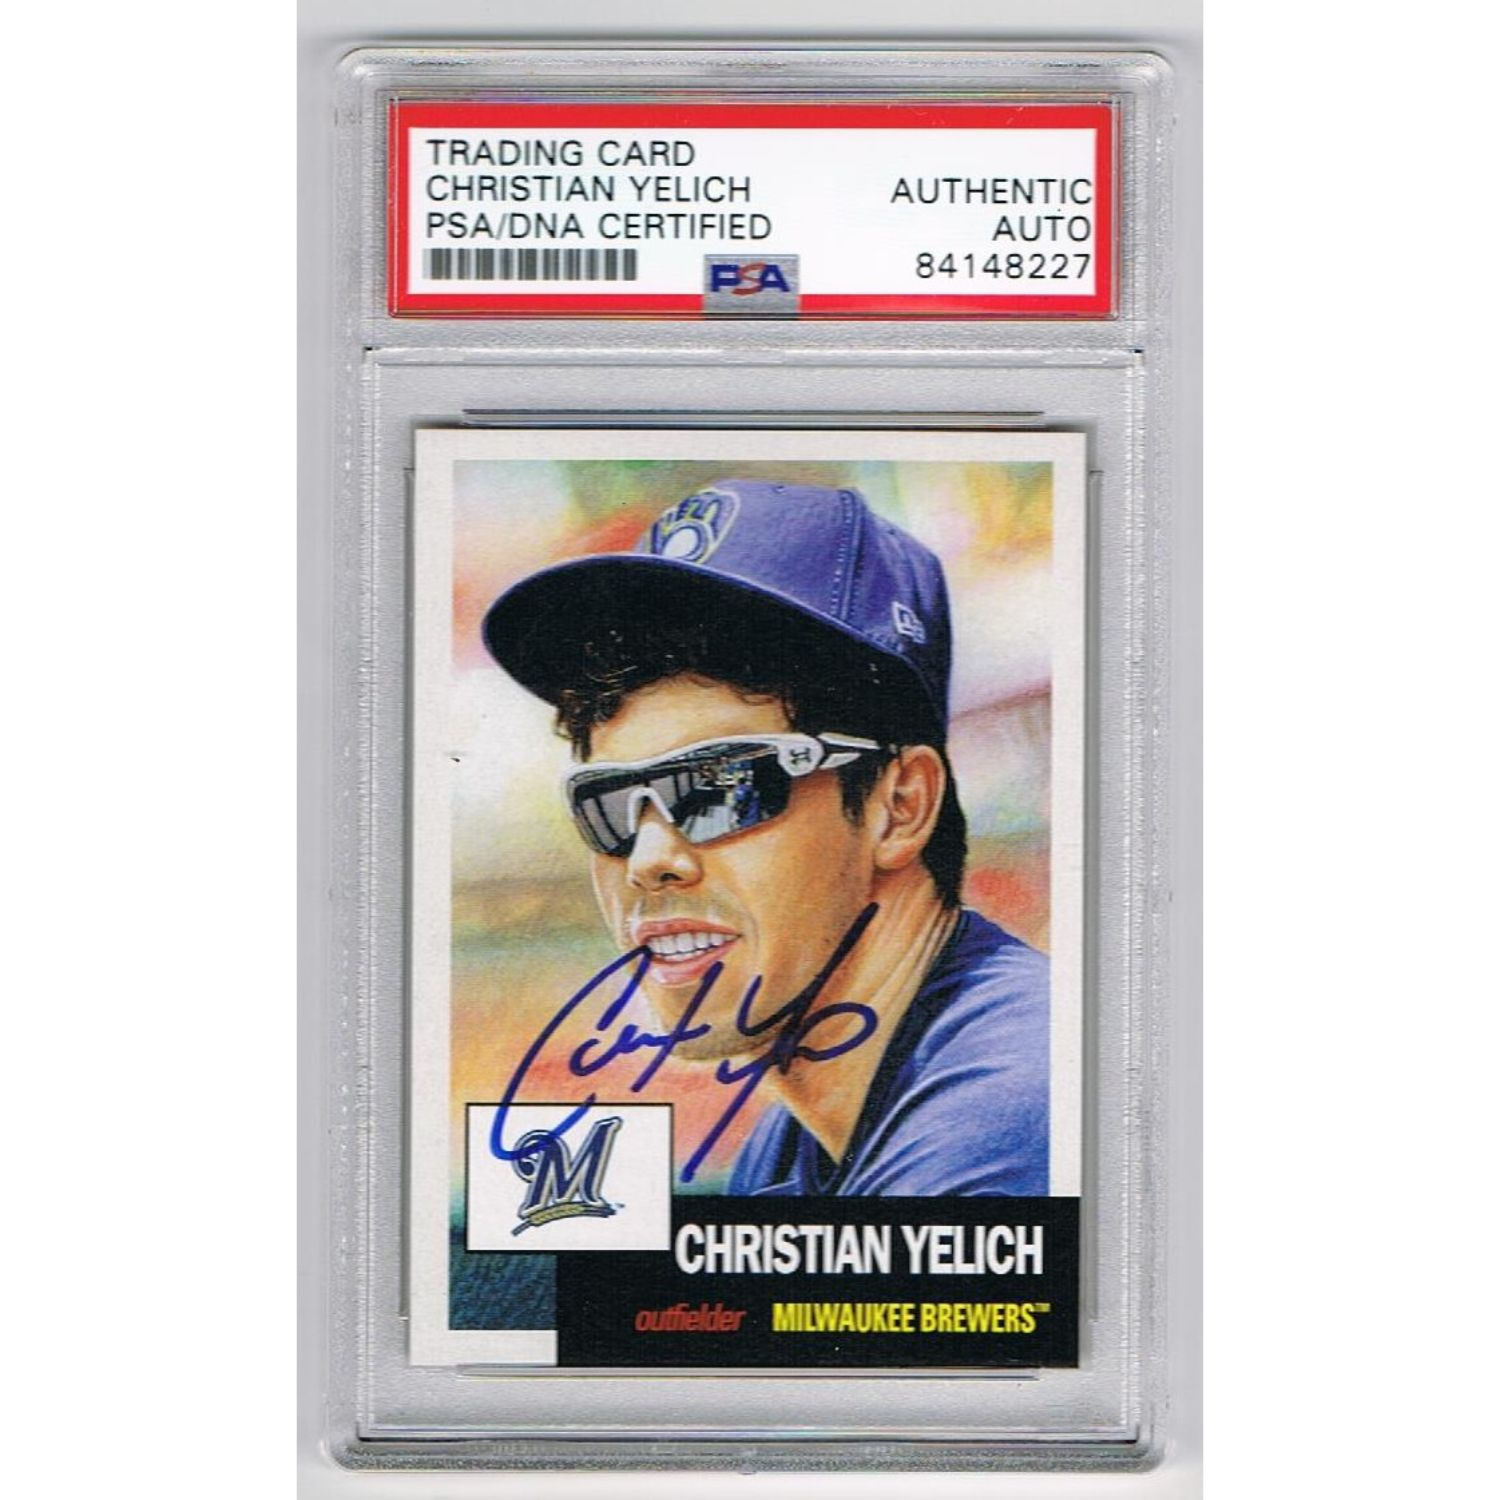 Christian Yelich Milwaukee Brewers Autographed 2018 Topps Living Signed Baseball Trading Card PSA DNA COA